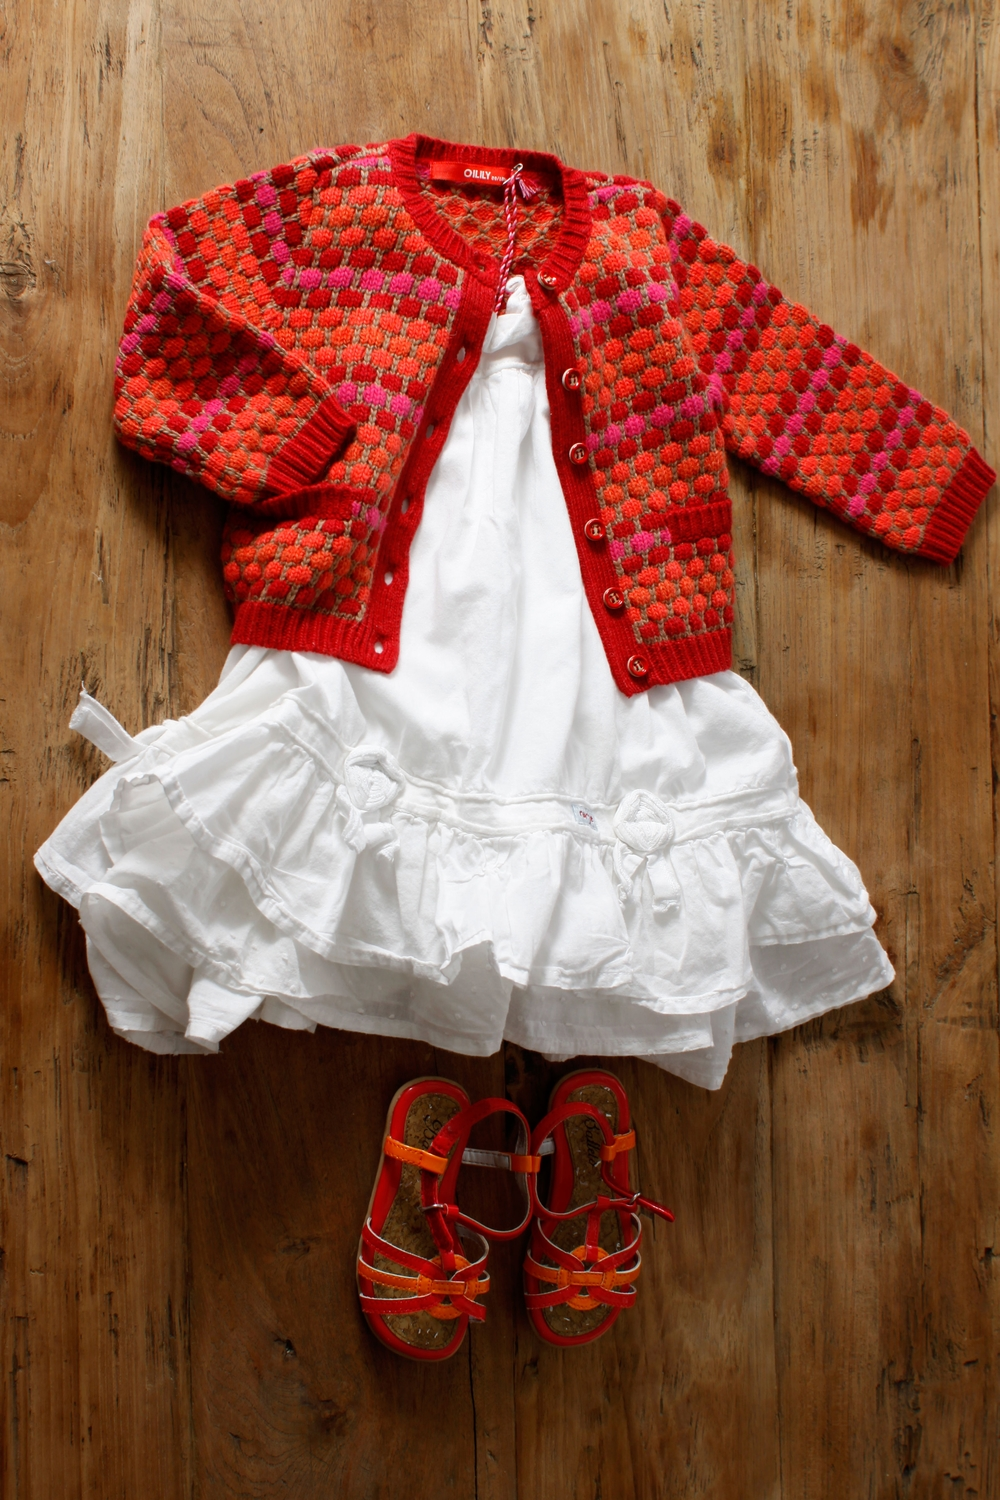 Image includes NEW Oilily Katje cardigan. Size: 80, 12-18 months. $58.